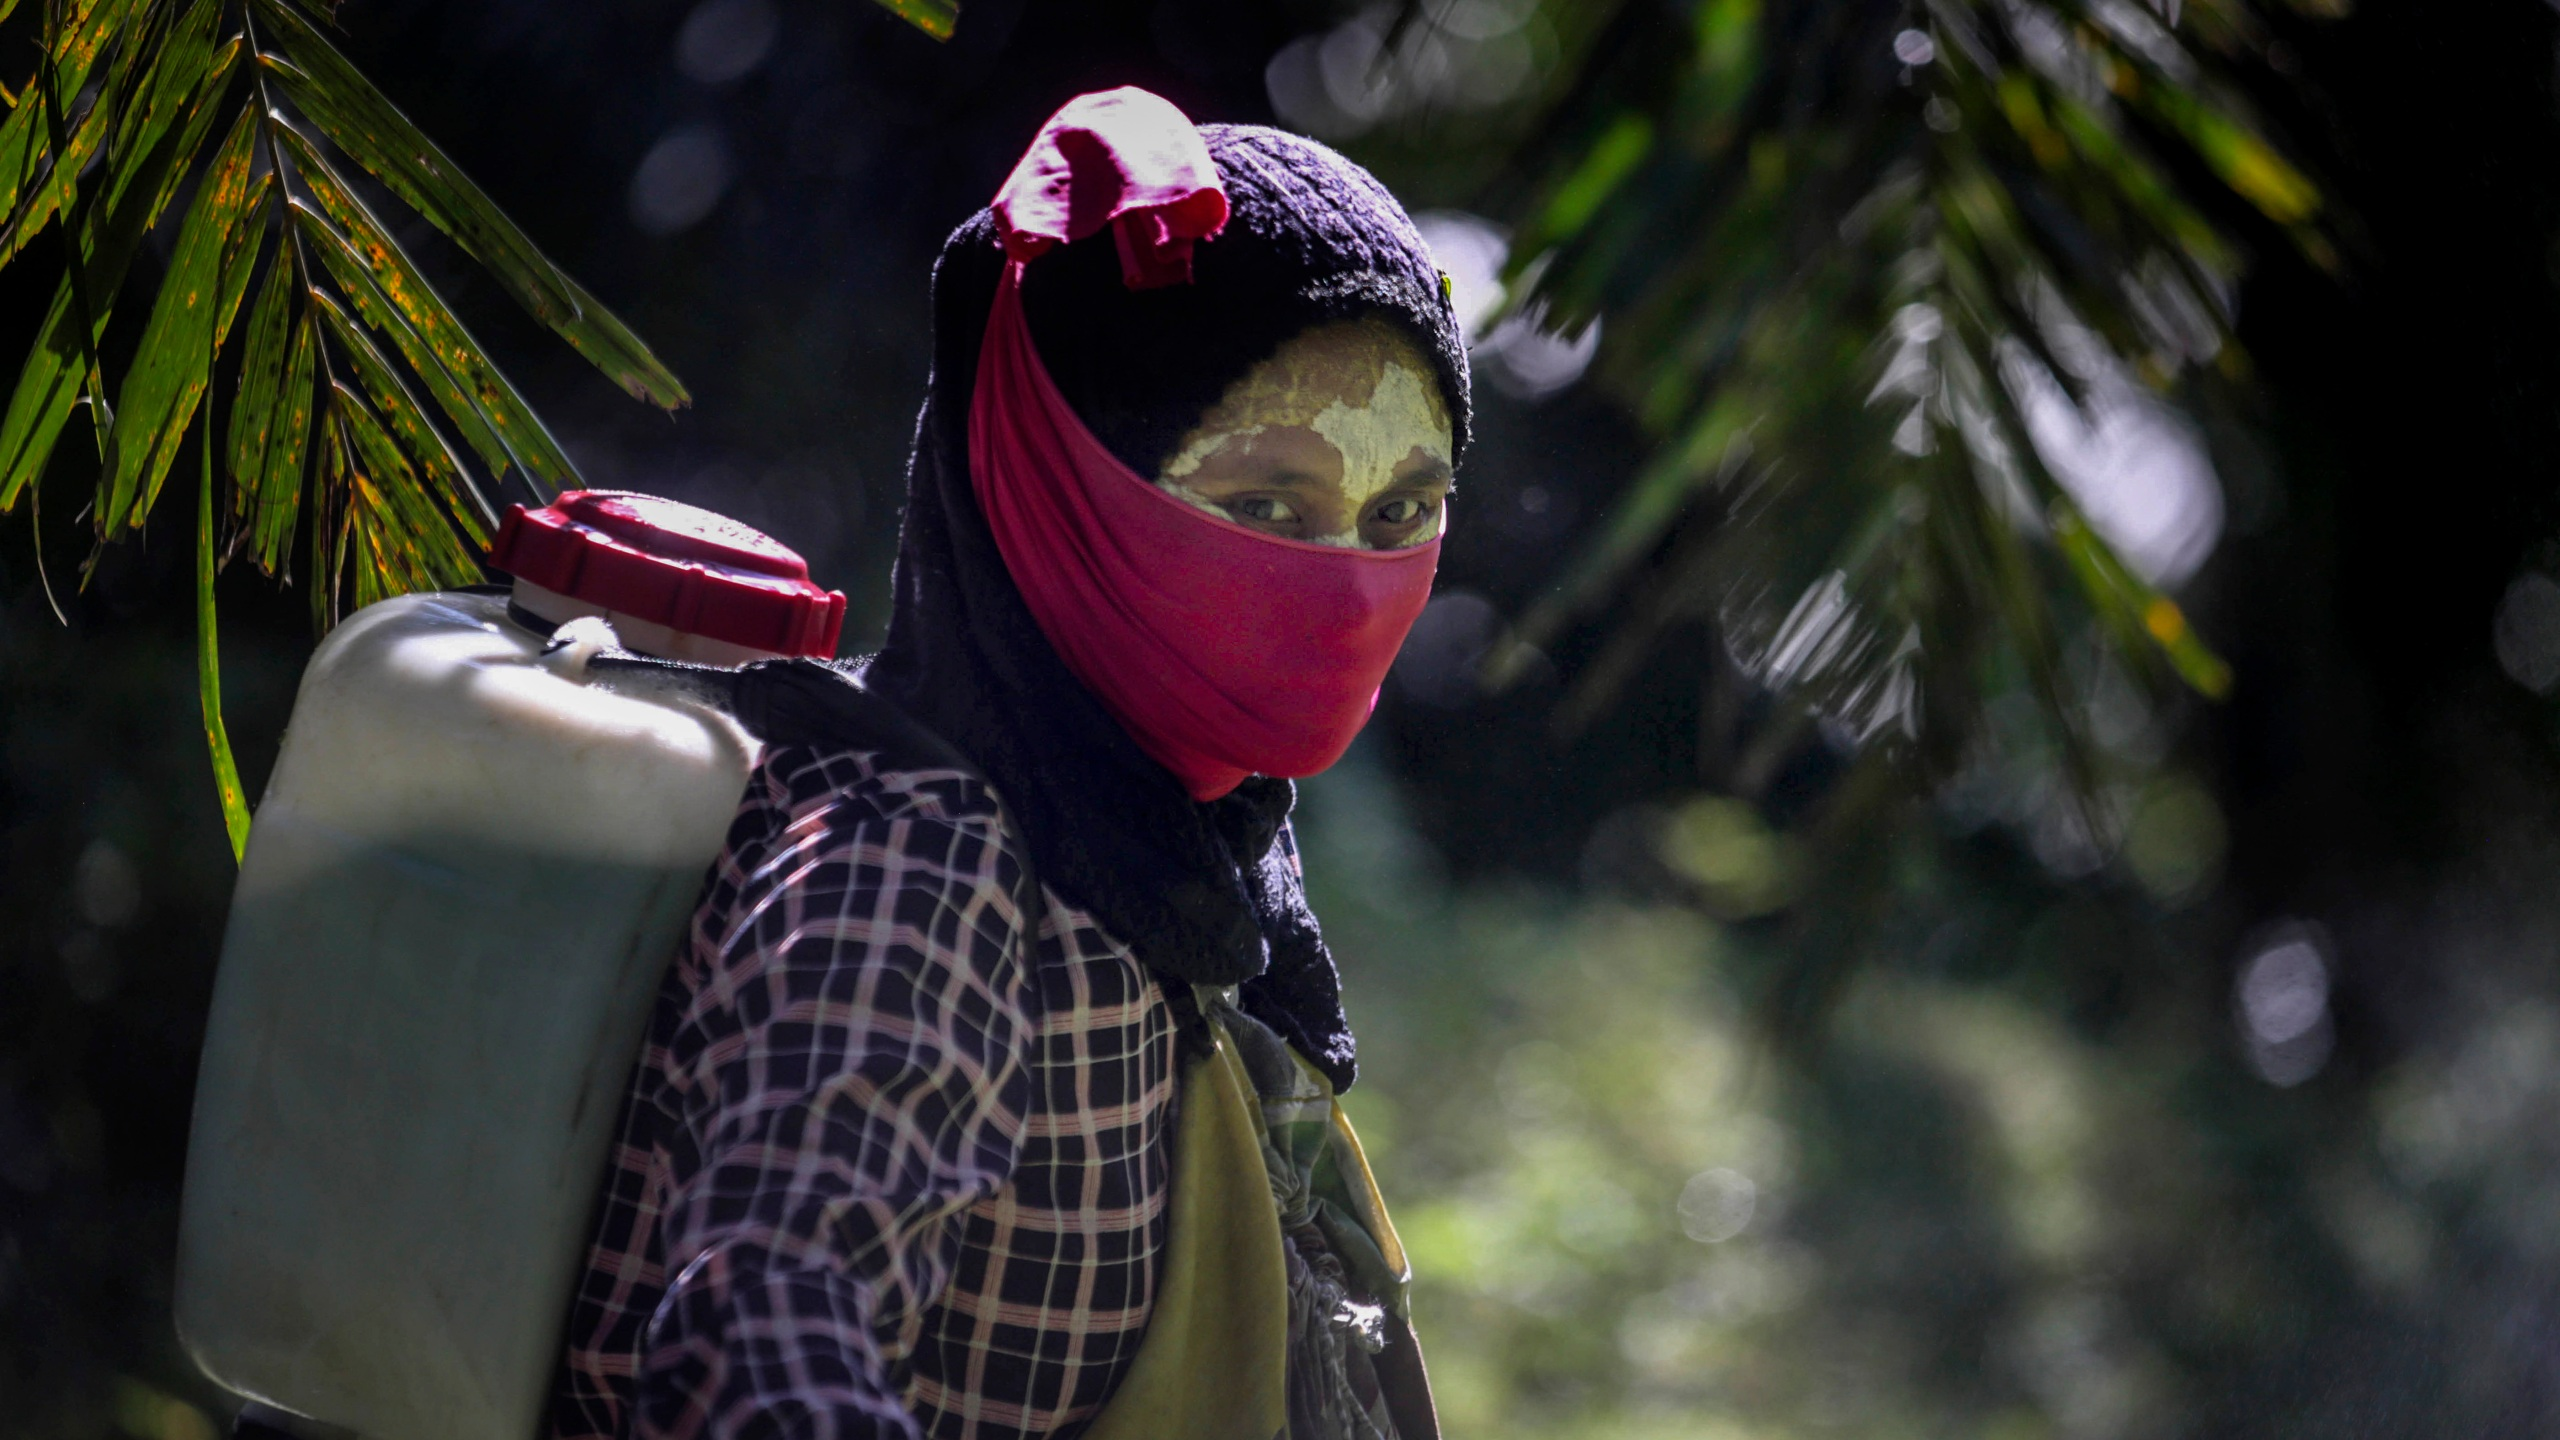 A female worker walks with a pesticide sprayer on her back at a palm oil plantation in Sumatra, Indonesia, on Sept. 8, 2018. Some workers use a yellow paste made of rice powder and a local root as a sunblock. (Binsar Bakkara / Associated Press)